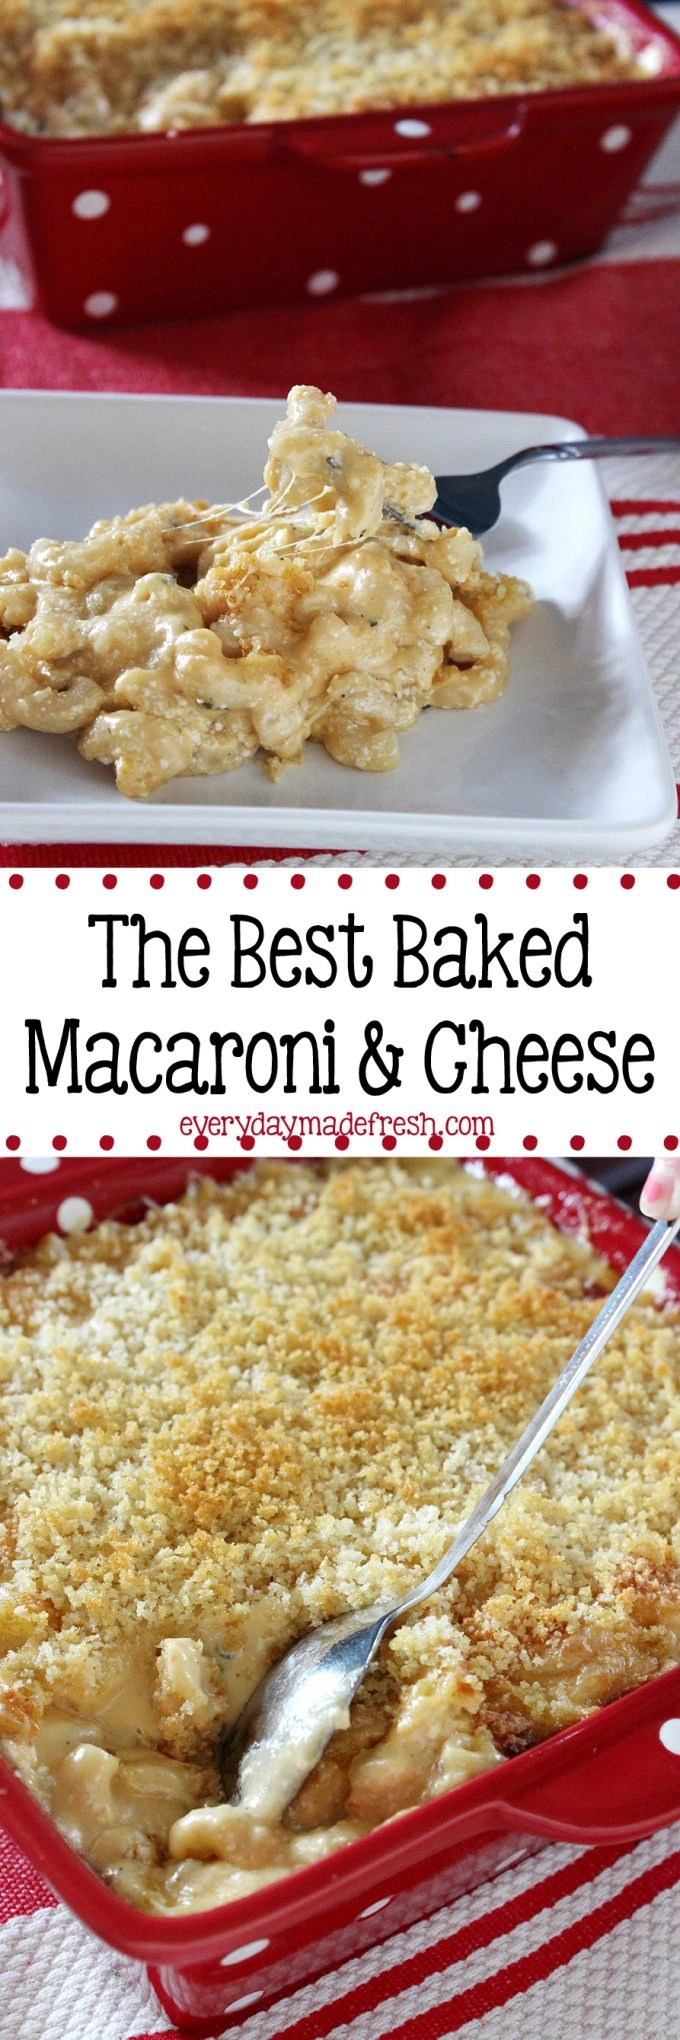 The Best Baked Macaroni and Cheese is creamy, cheesy, and the perfect addition to your table! | EverydayMadeFresh.com